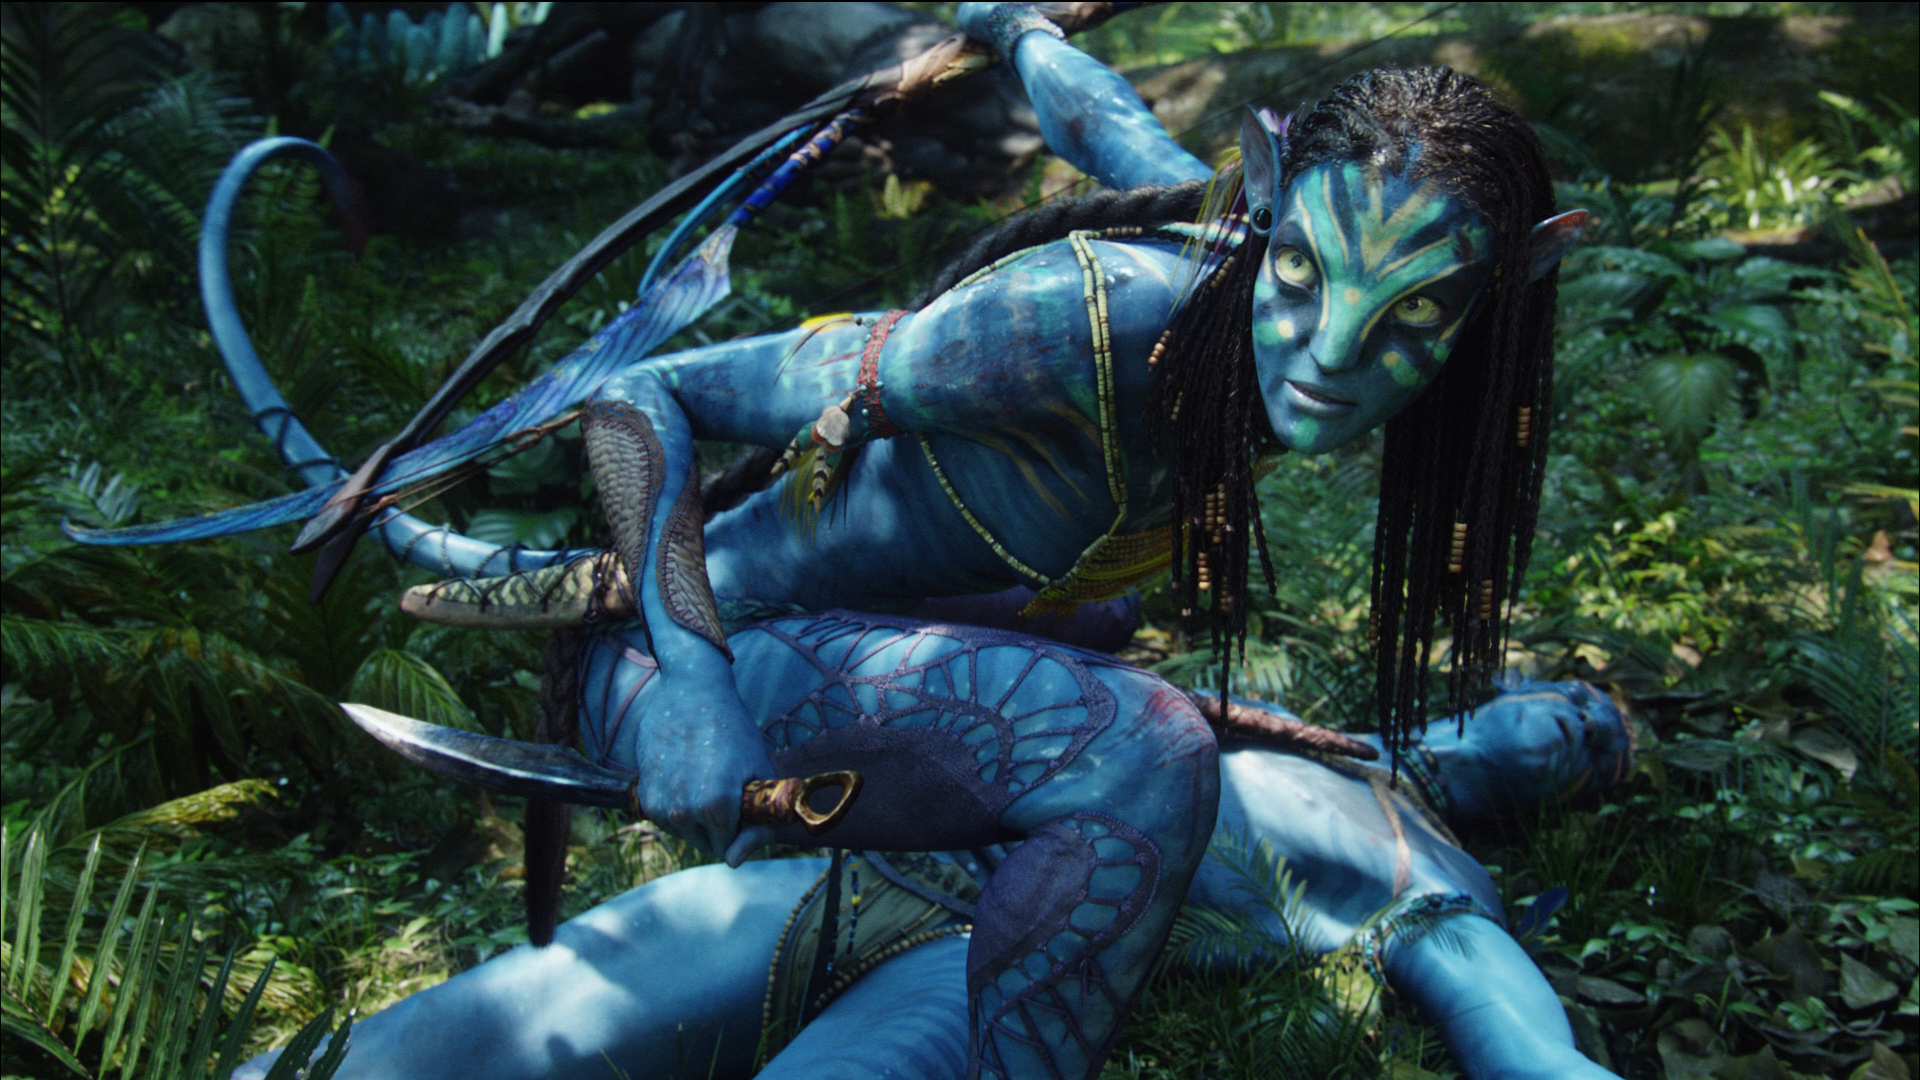 james cameron and cirque du soleil developing avatar live show